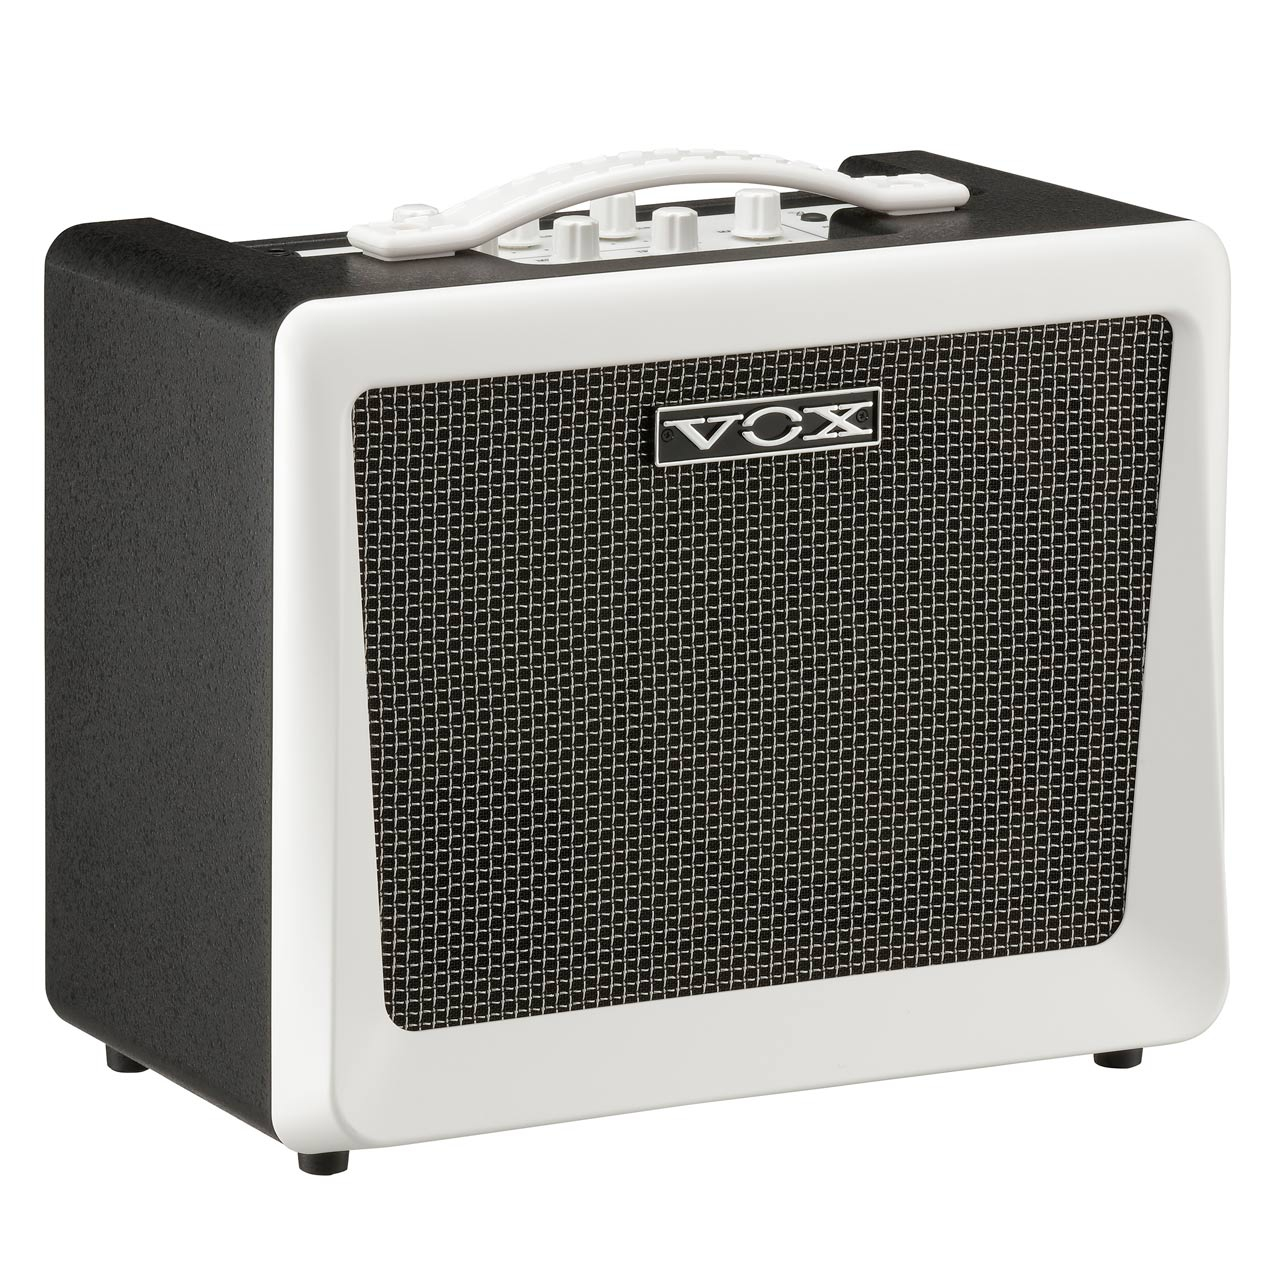 vox vx50 kb keyboard amplifiers instrument amplifiers. Black Bedroom Furniture Sets. Home Design Ideas